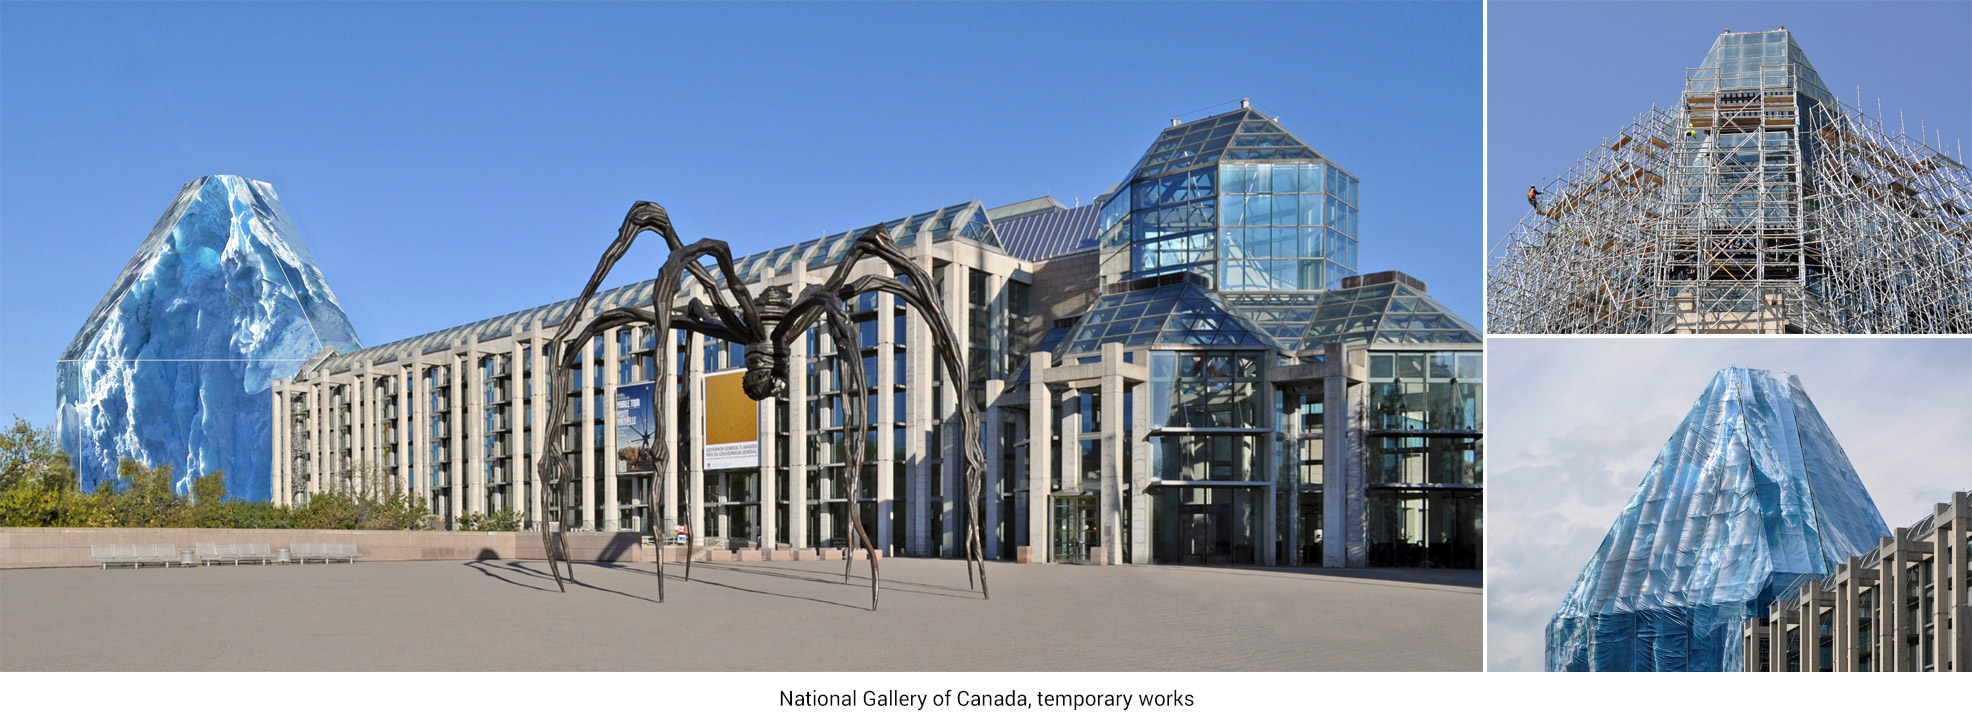 National Gallery of Canada, temporary works